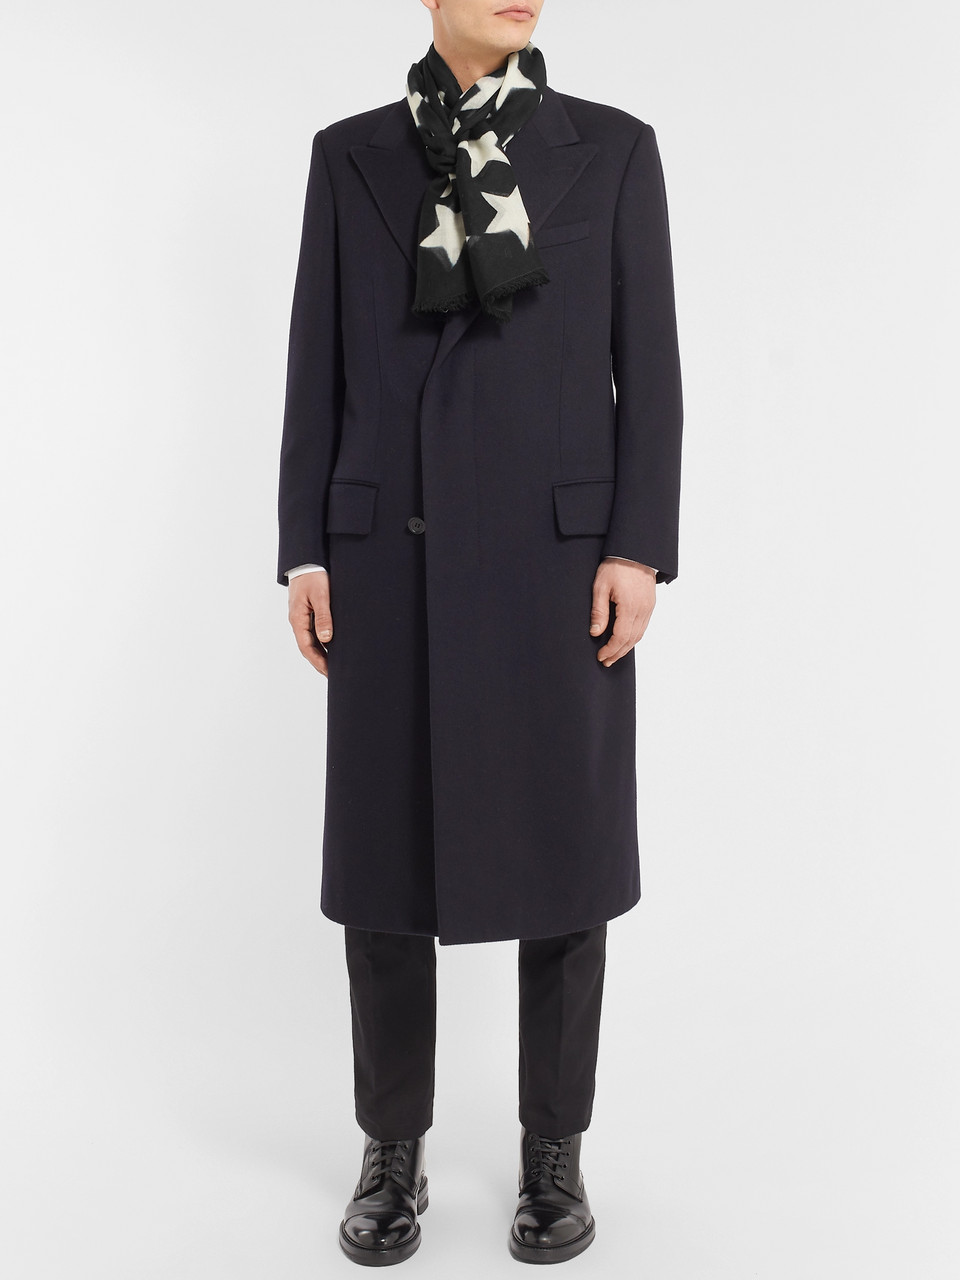 Paul Smith Fringed Star-Print Wool-Gauze Scarf